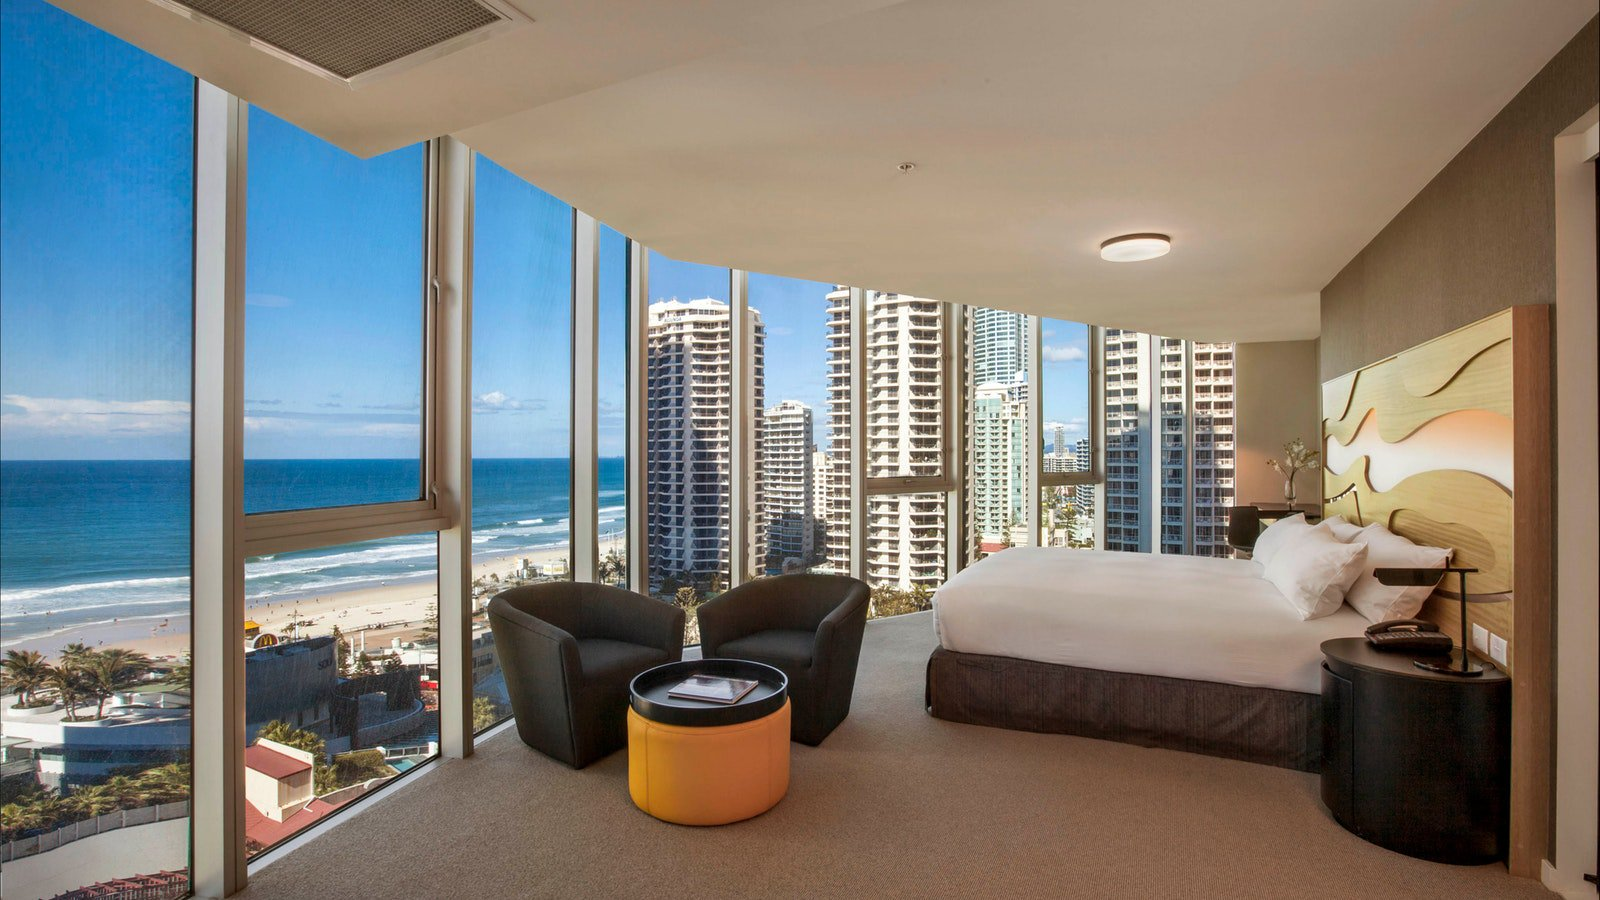 Hilton Surfers Paradise - Relaxation Room